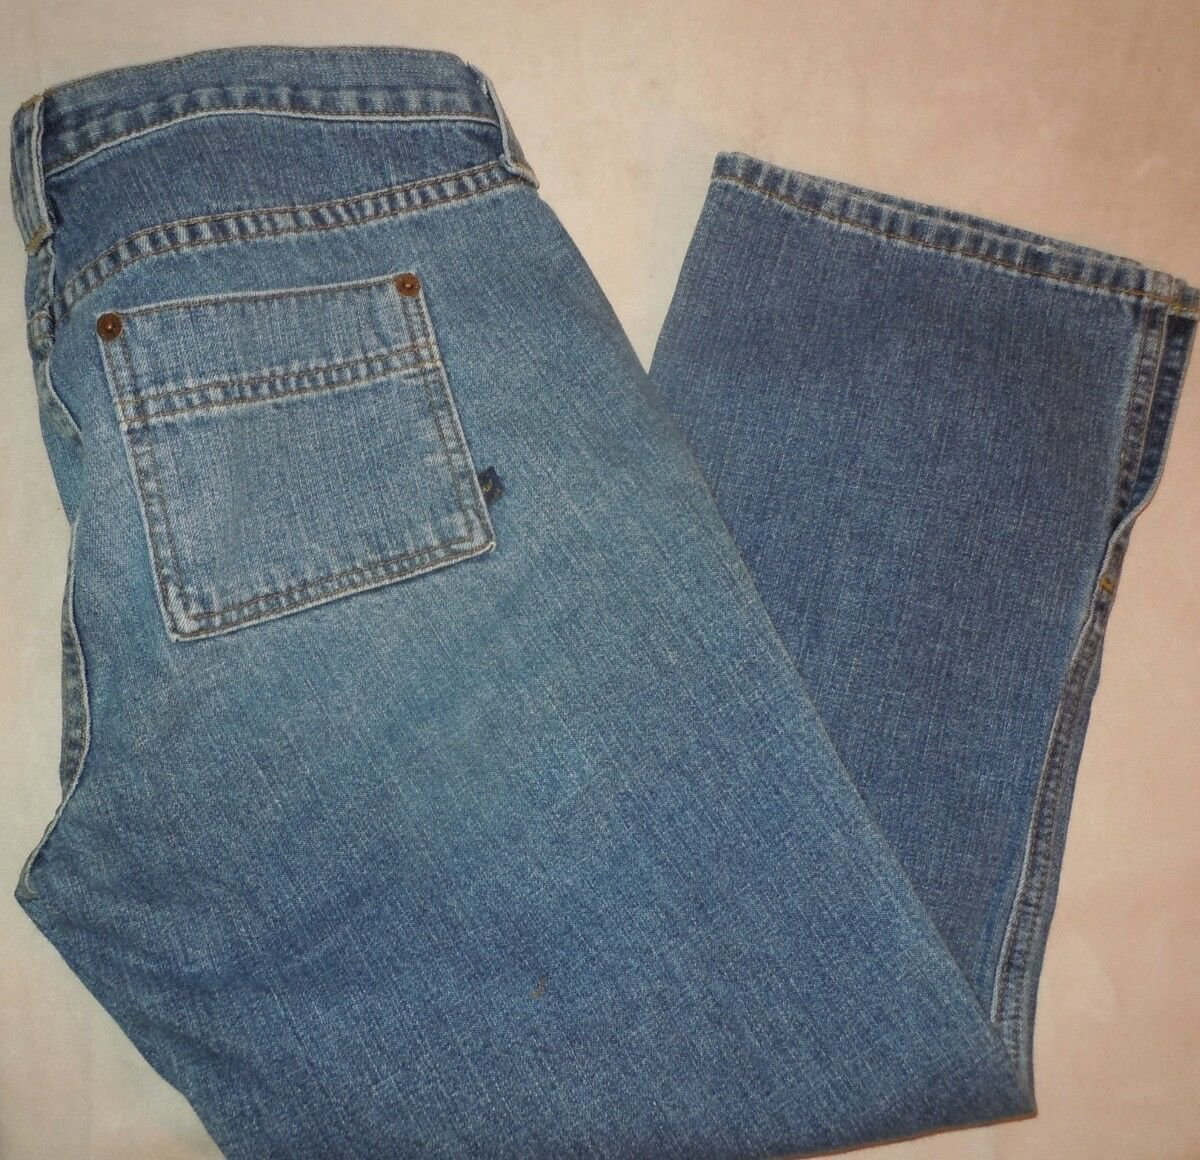 Abercrombie & Fitch Capri lace up medium wash jeans size 4